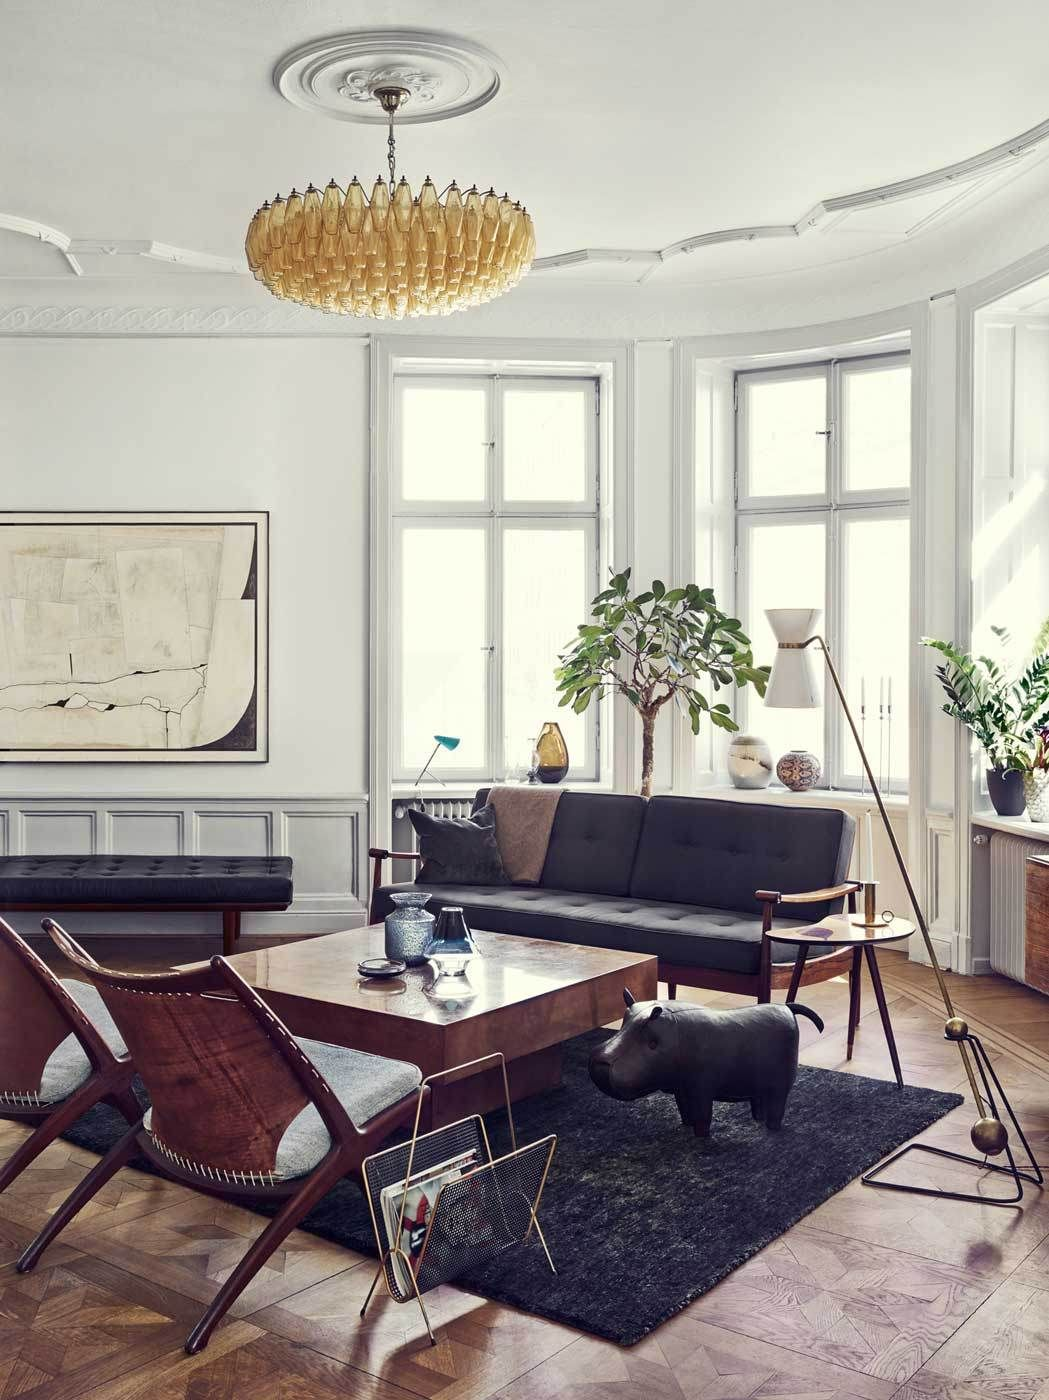 Joanna lavens stunning stockholm apartment yellowtrace love the light fitting